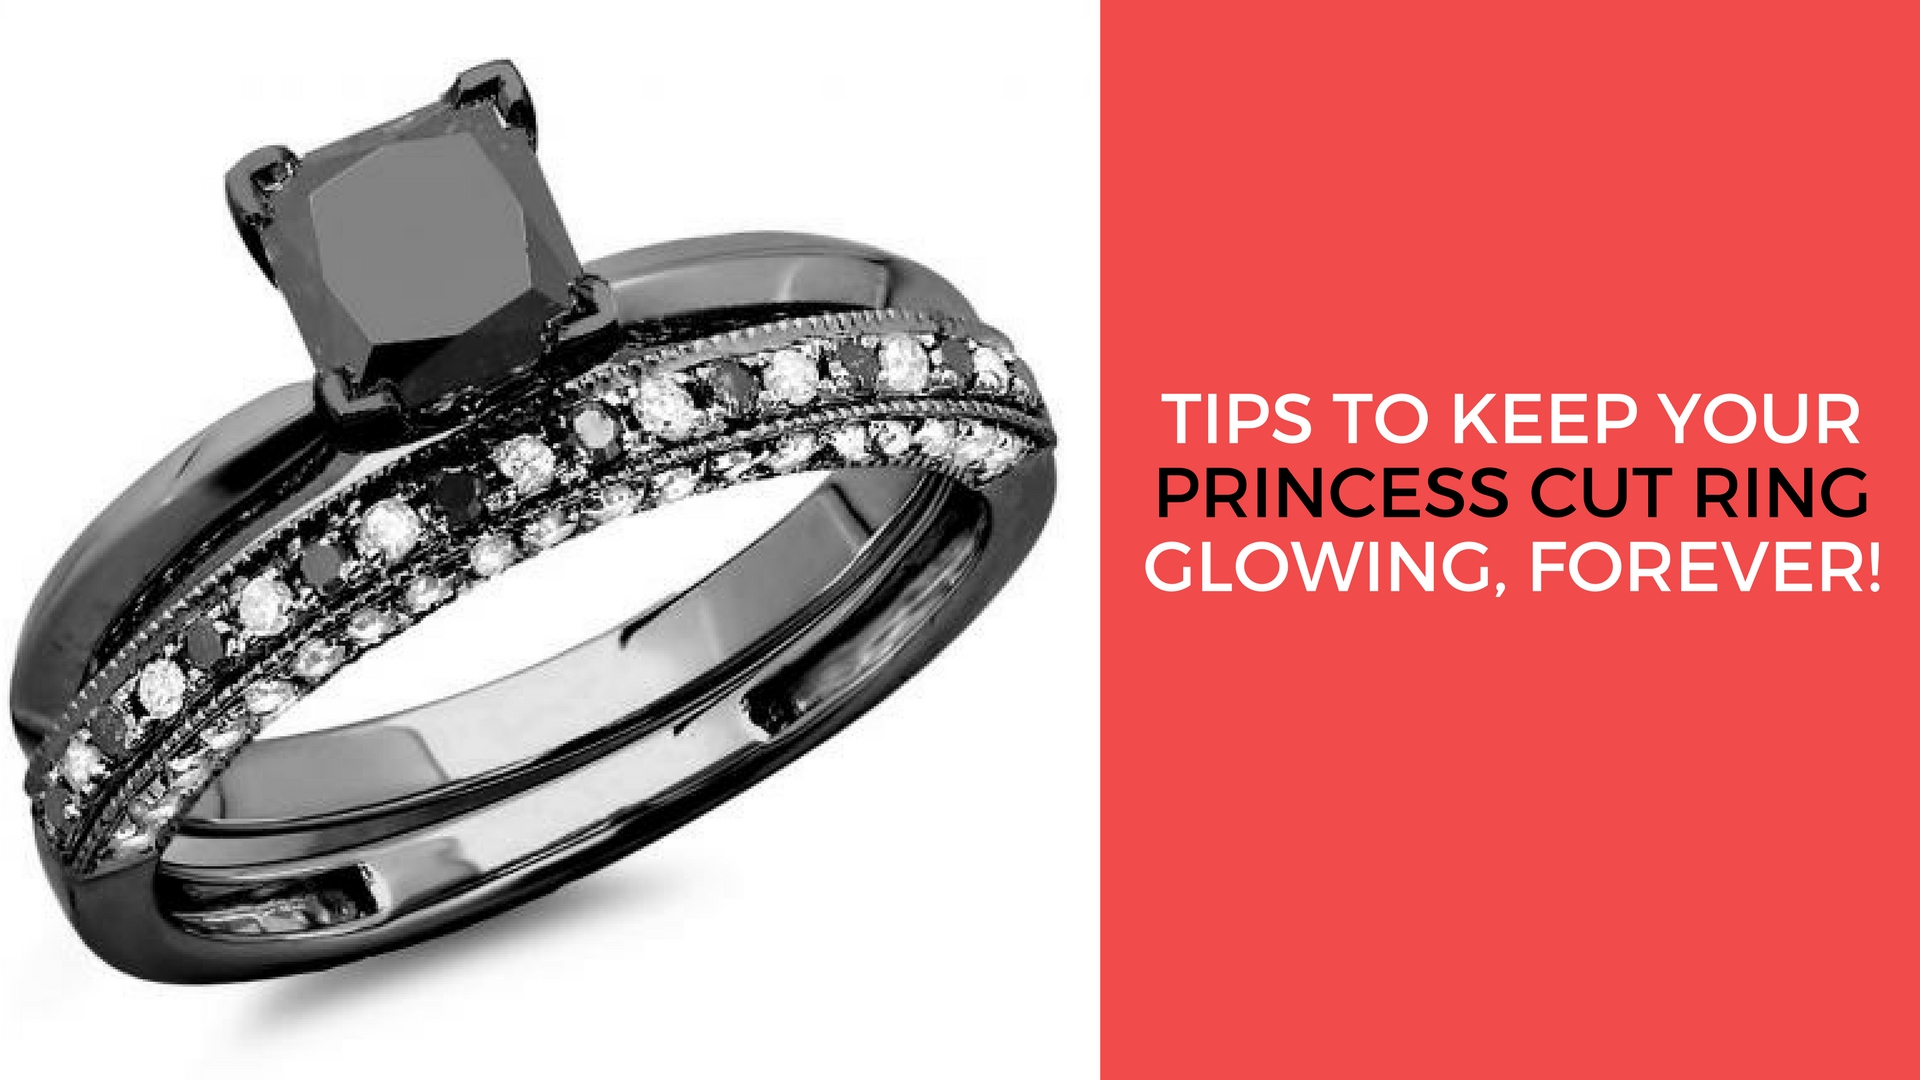 Tips To Keep Your Princess Cut Ring Glowing, Forever